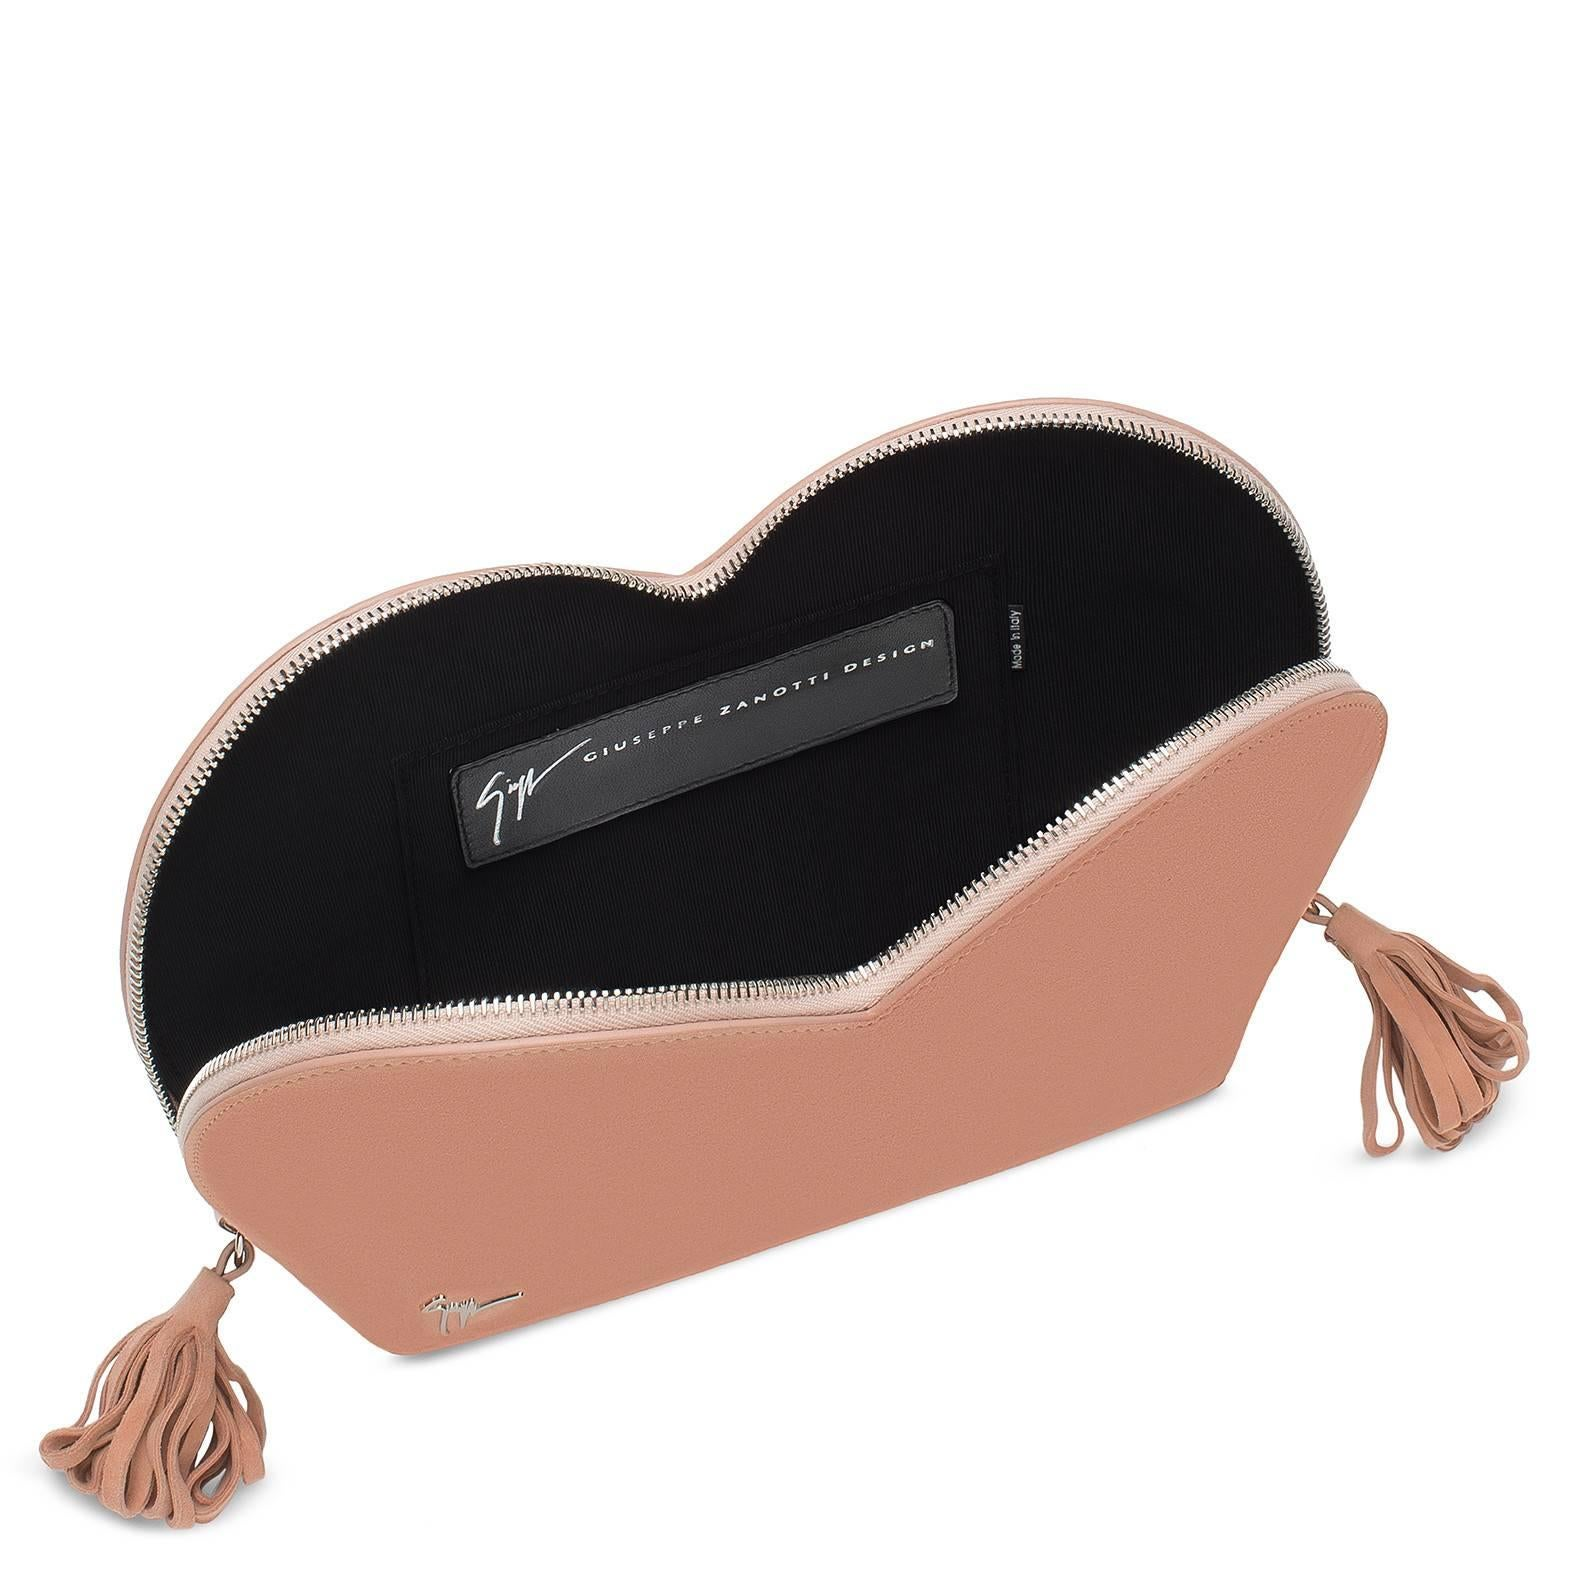 Giuseppe Zanotti Logo Blush Suede Dual Tassel Evening Clutch Bag